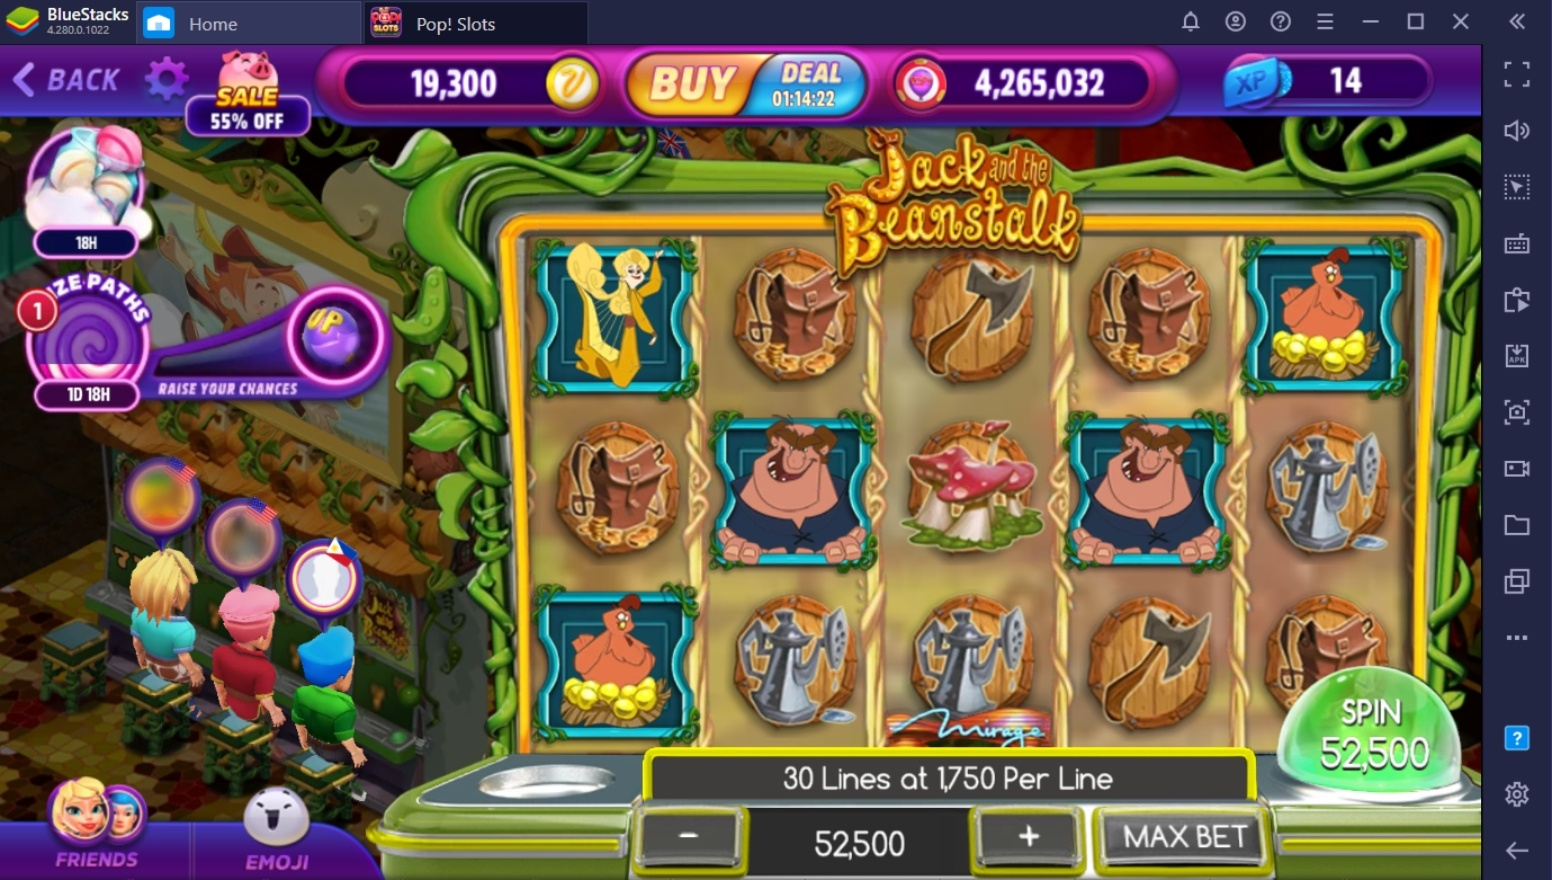 Pop! Slots Tips & Tricks To Help You Win More